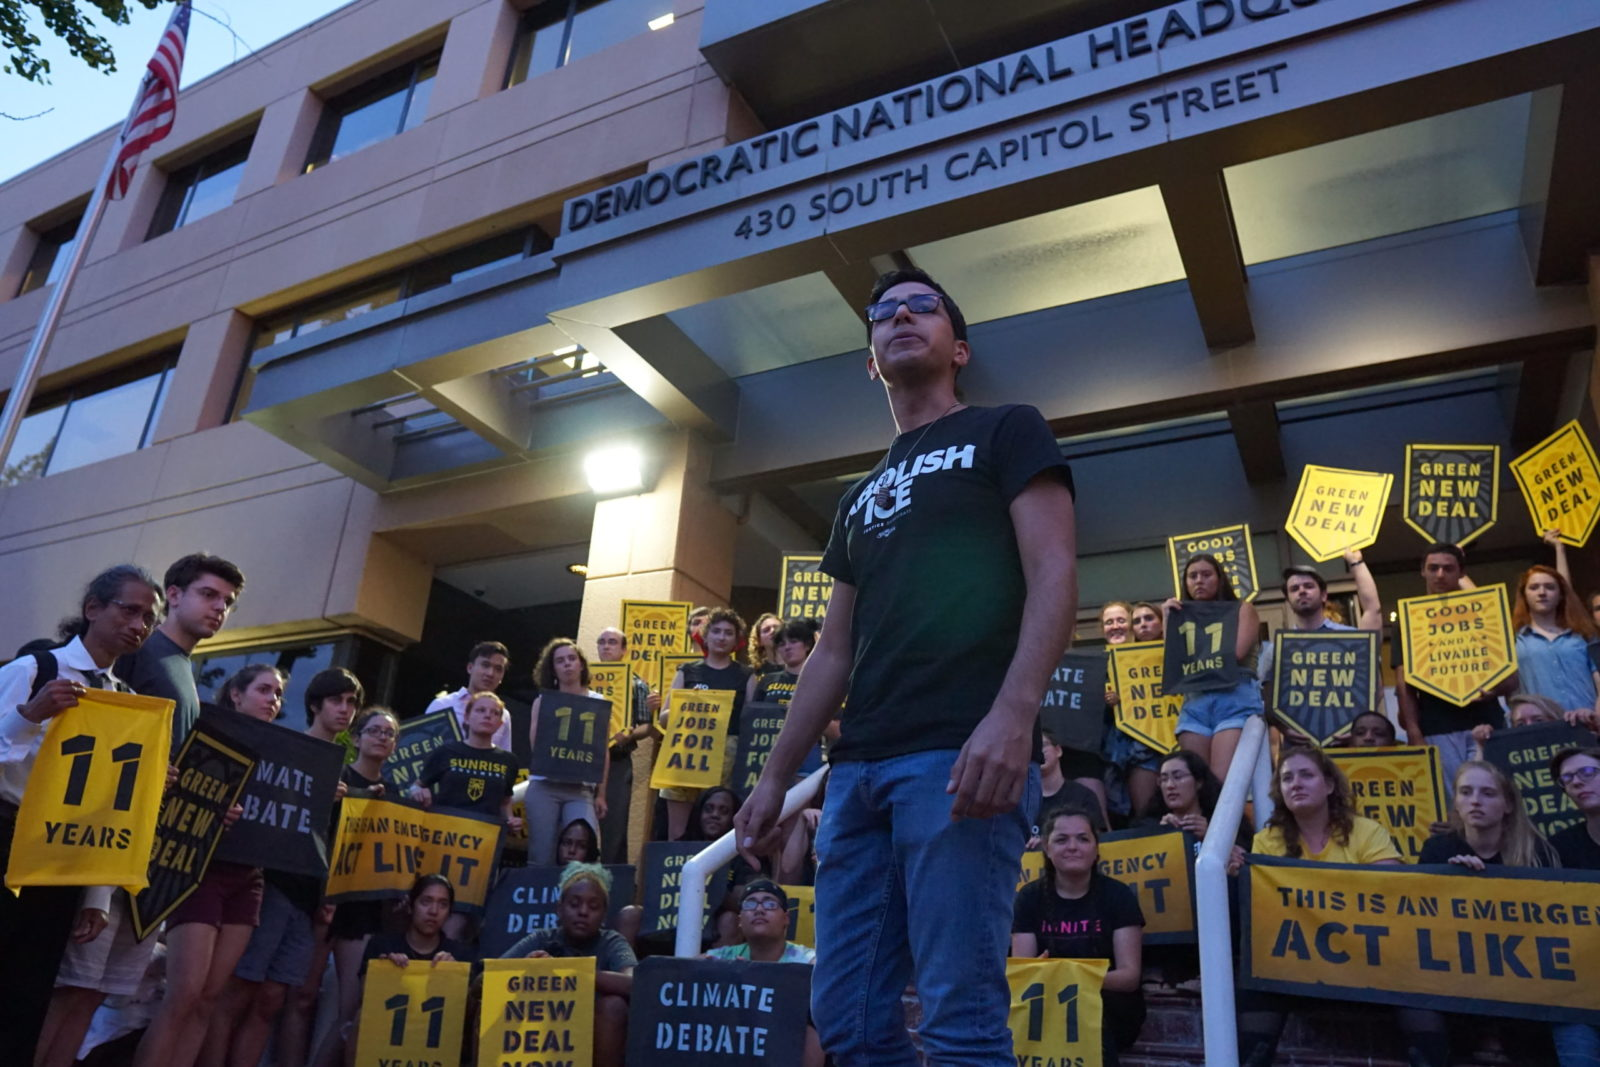 A Sunrise leader gives a speech while being surrounded by fellow Sunrisers who occupy the entrance to the DNC headquarters in DC to demand a presidential climate debate.